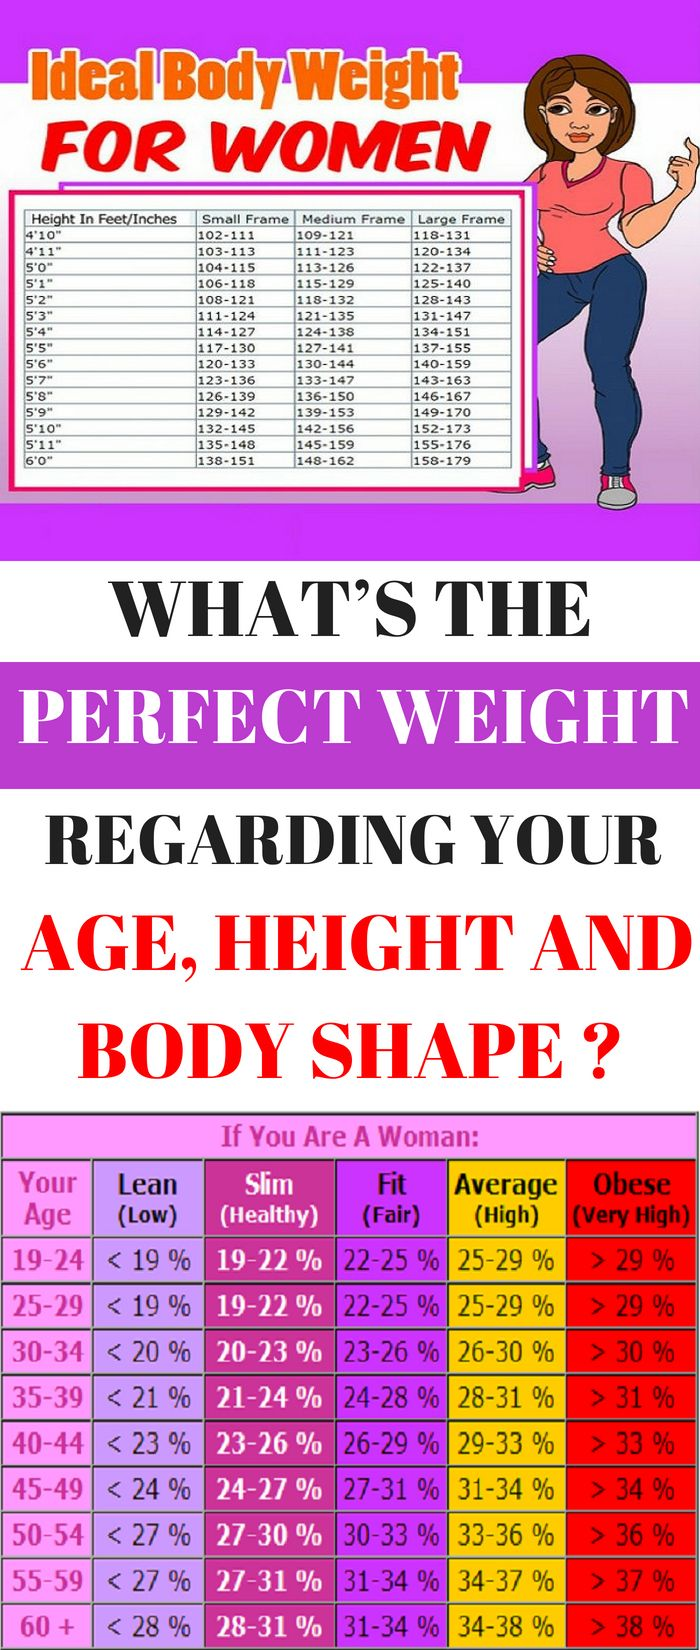 Women And Weight Charts Whats The Perfect Weight Regarding Your